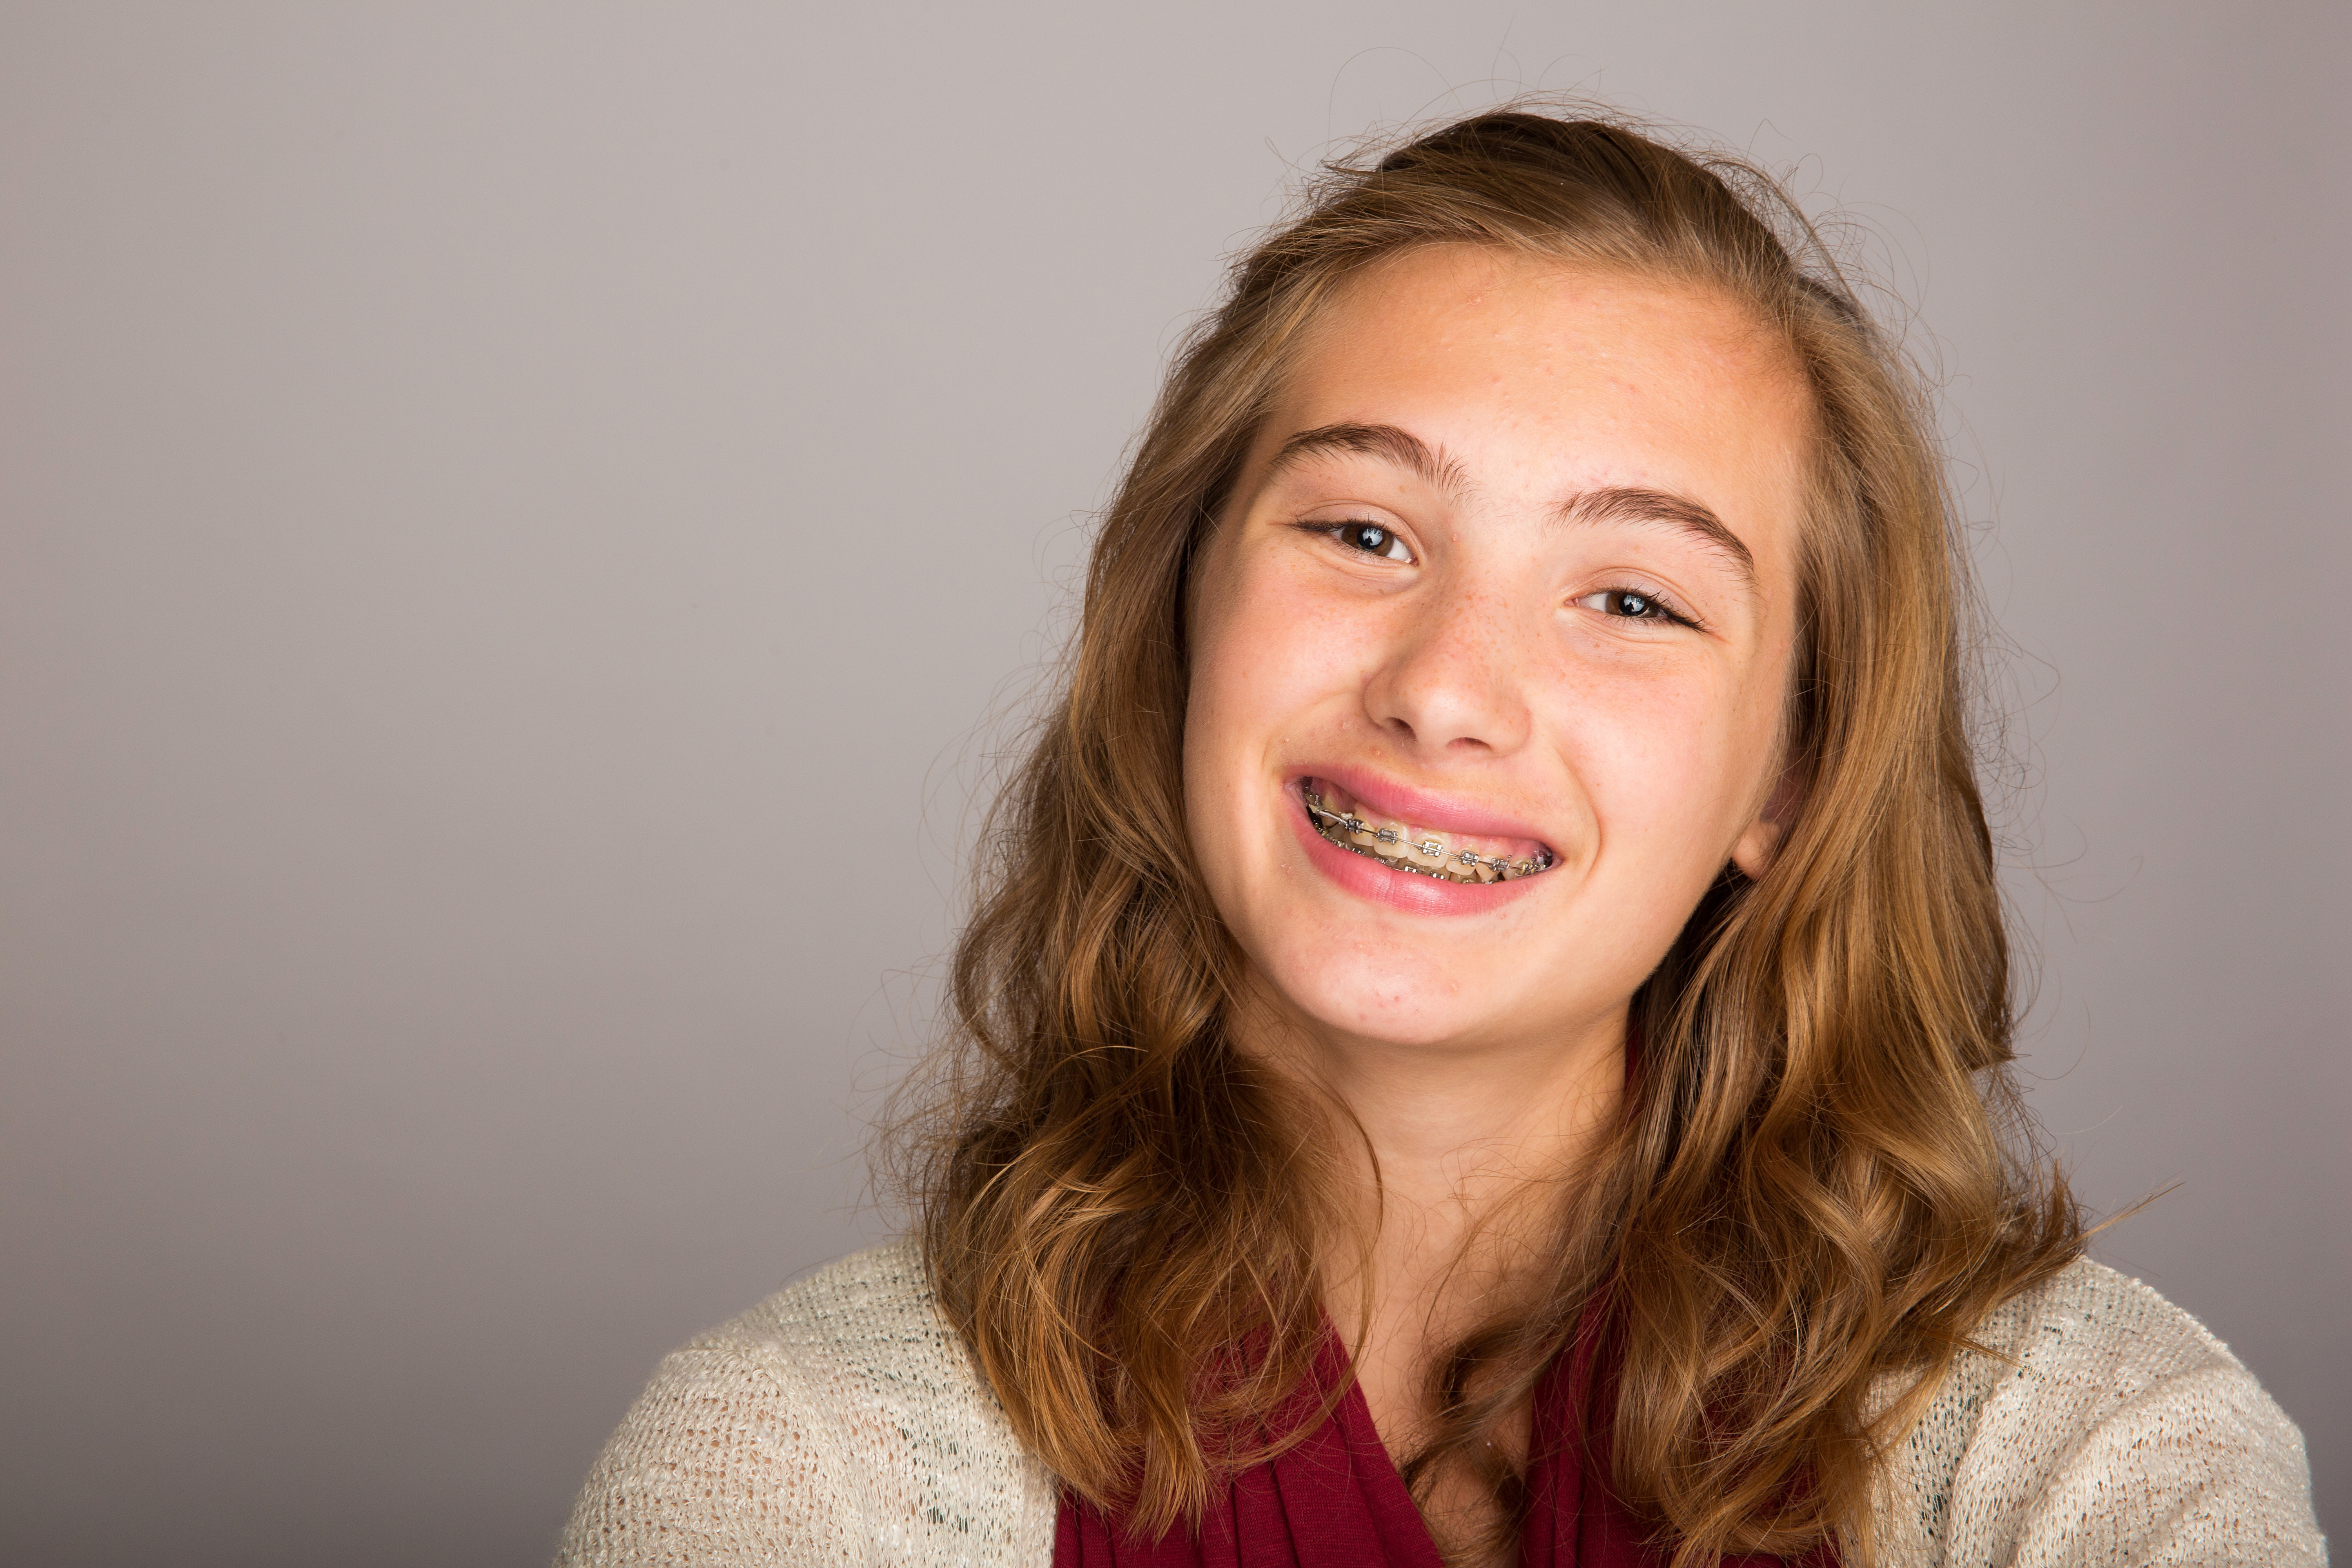 Teen Girl Braces Stock Photos - Royalty Free Images